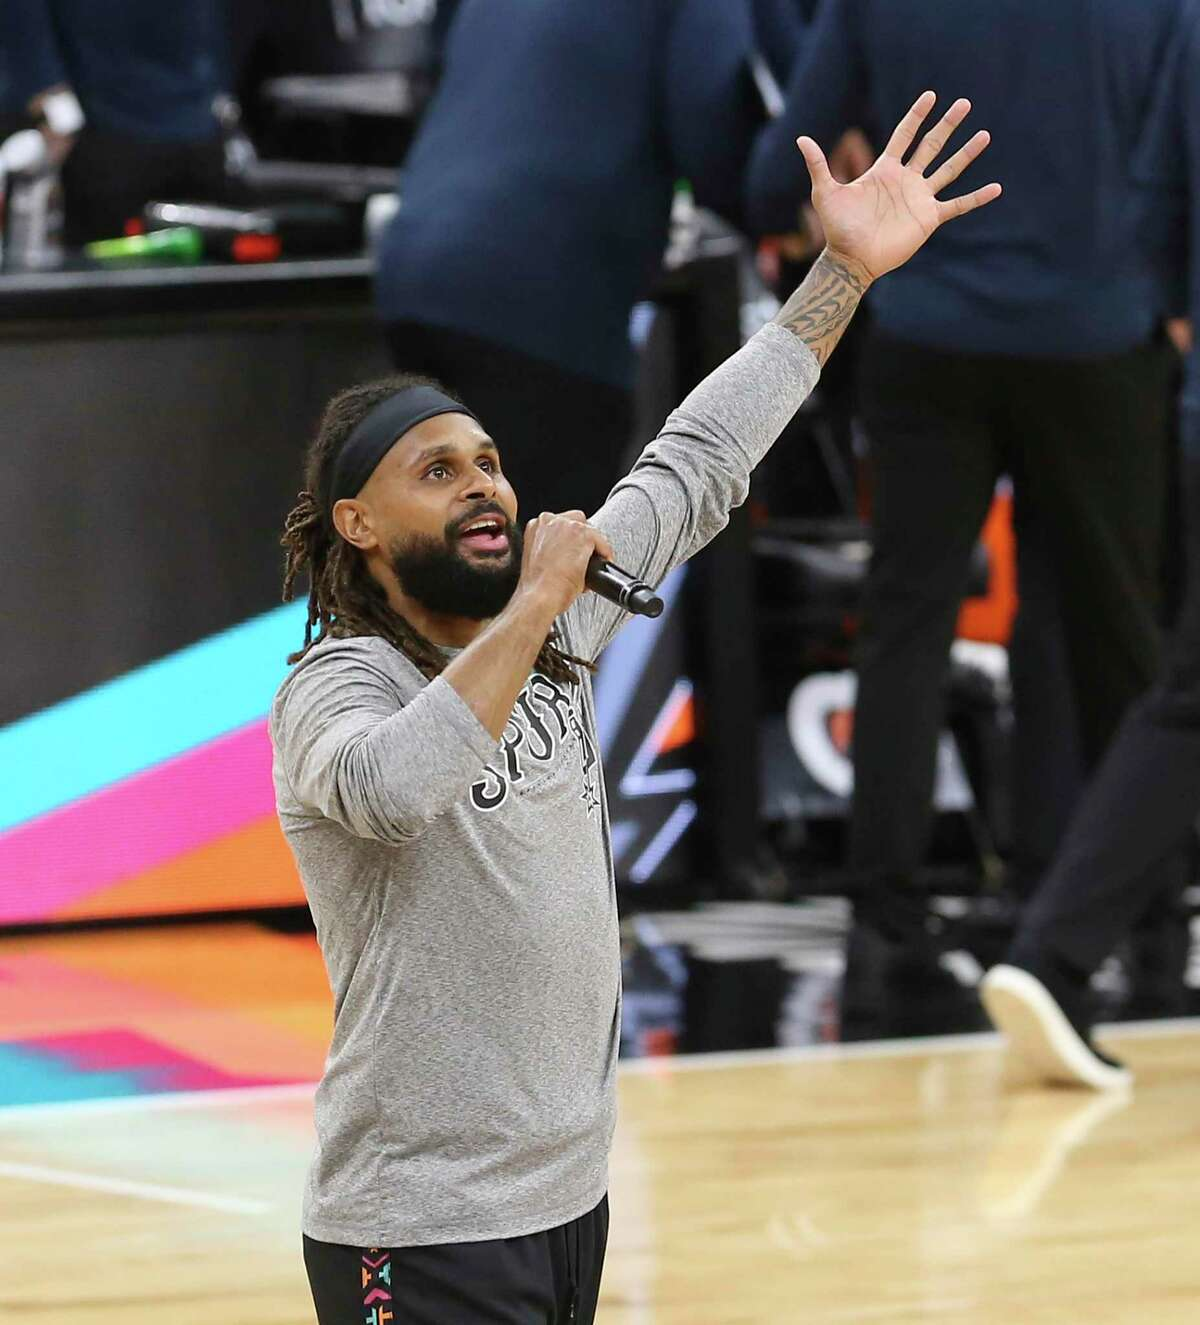 Spurs' Patty Mills welcomes back fans before the game against the Orlando Magic at the AT&T Center on Friday, Mar. 12, 2021. The game was the first time for fans to return to the arena since the start of the Covid-19 pandemic last year.